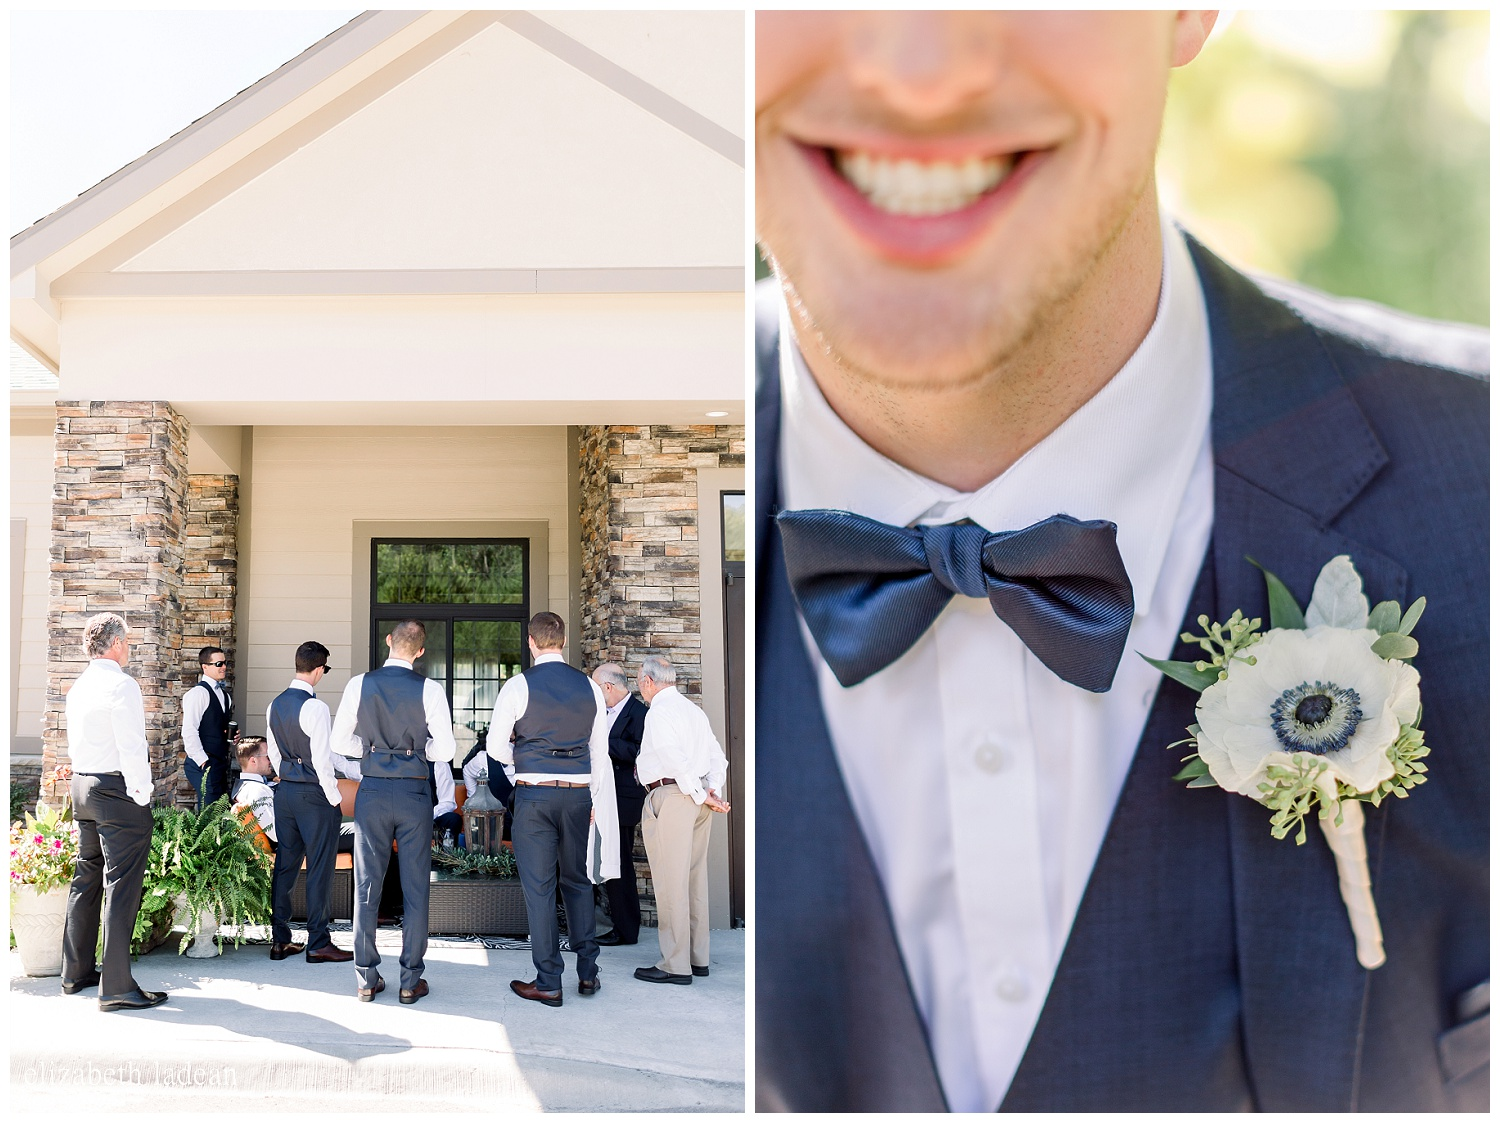 Willow-Creek-Blush-and-Blues-Outdoor-Wedding-Photography-S+Z2018-elizabeth-ladean-photography-photo_0514.jpg